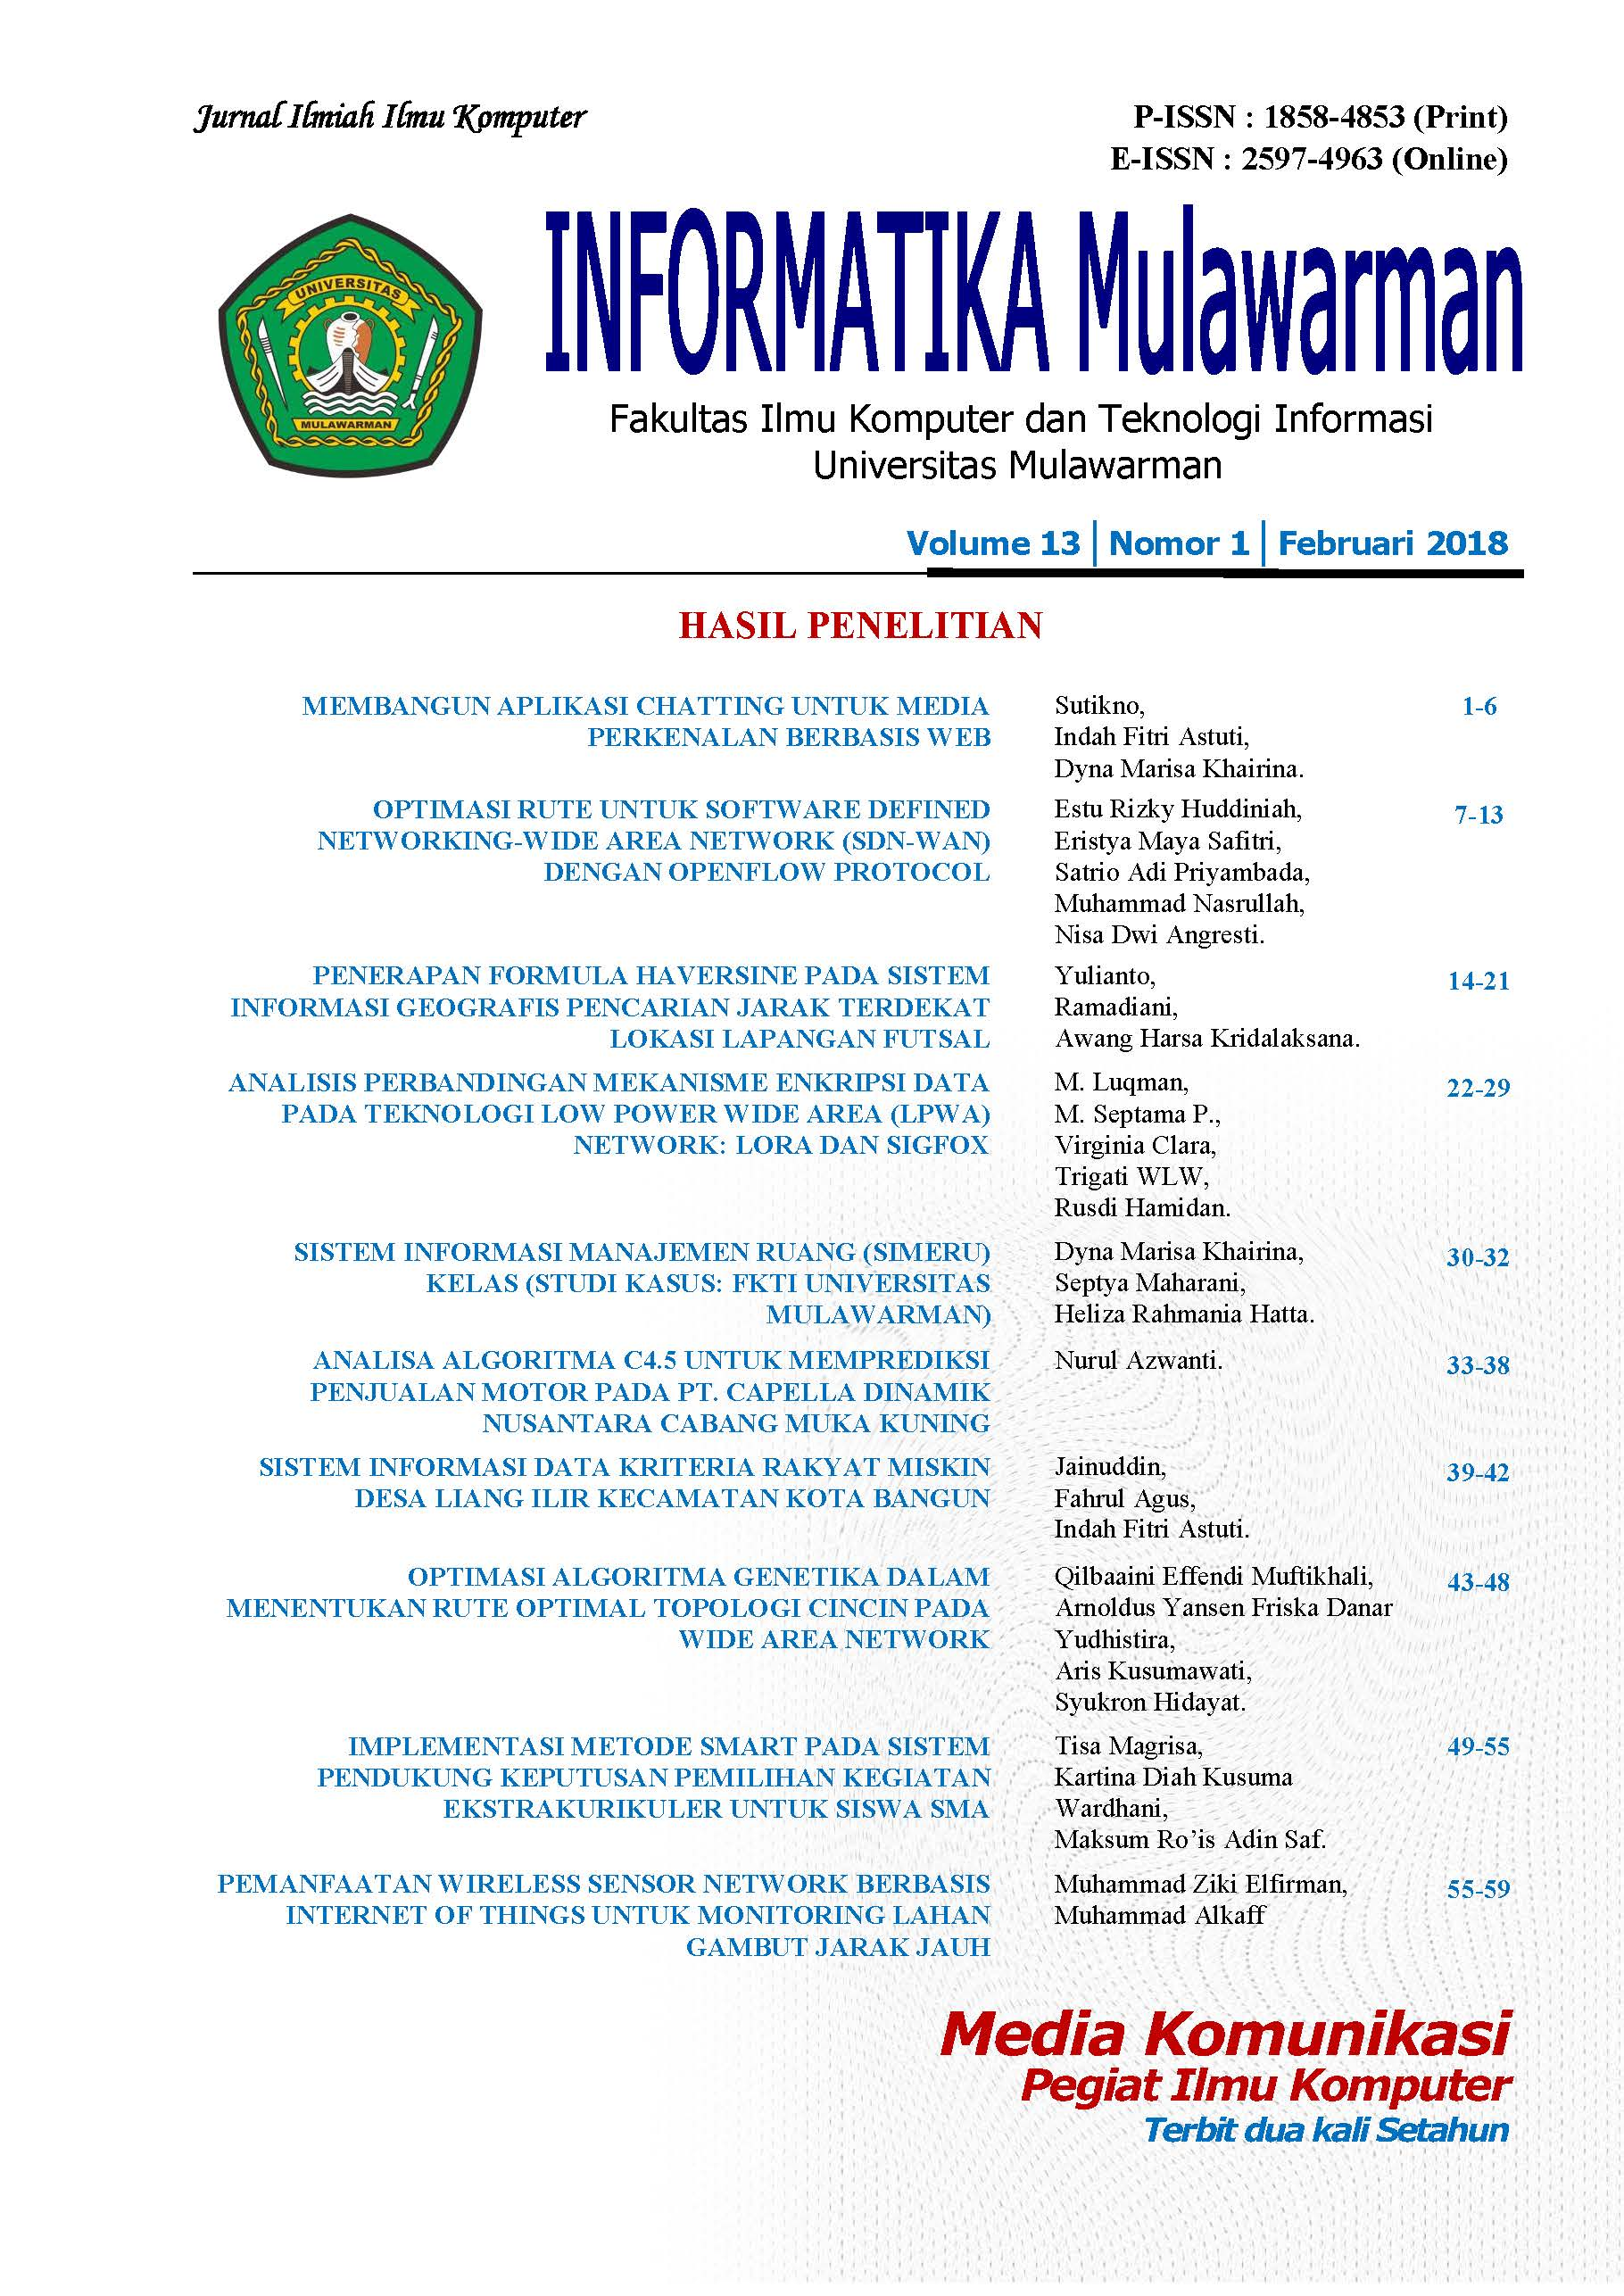 Jurnal Informatika Mulawarman Vol 13 Issue 1 Februari 2018